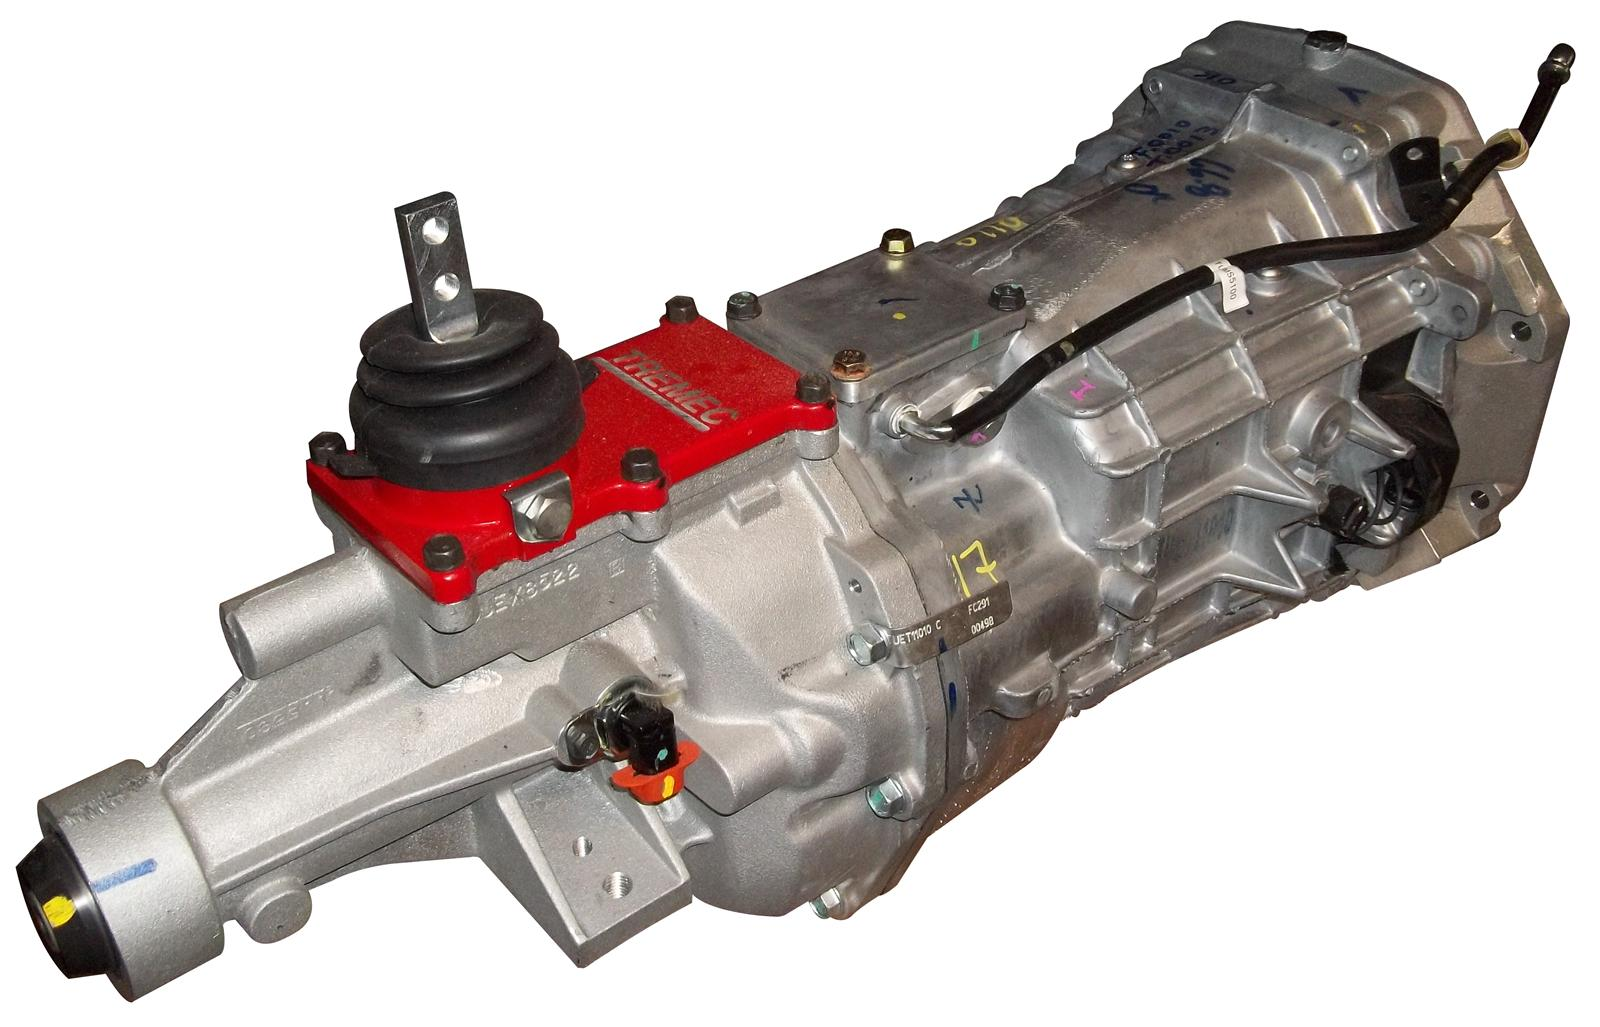 Tremec Tutorial: A Quick Guide to Tremec Transmissions and